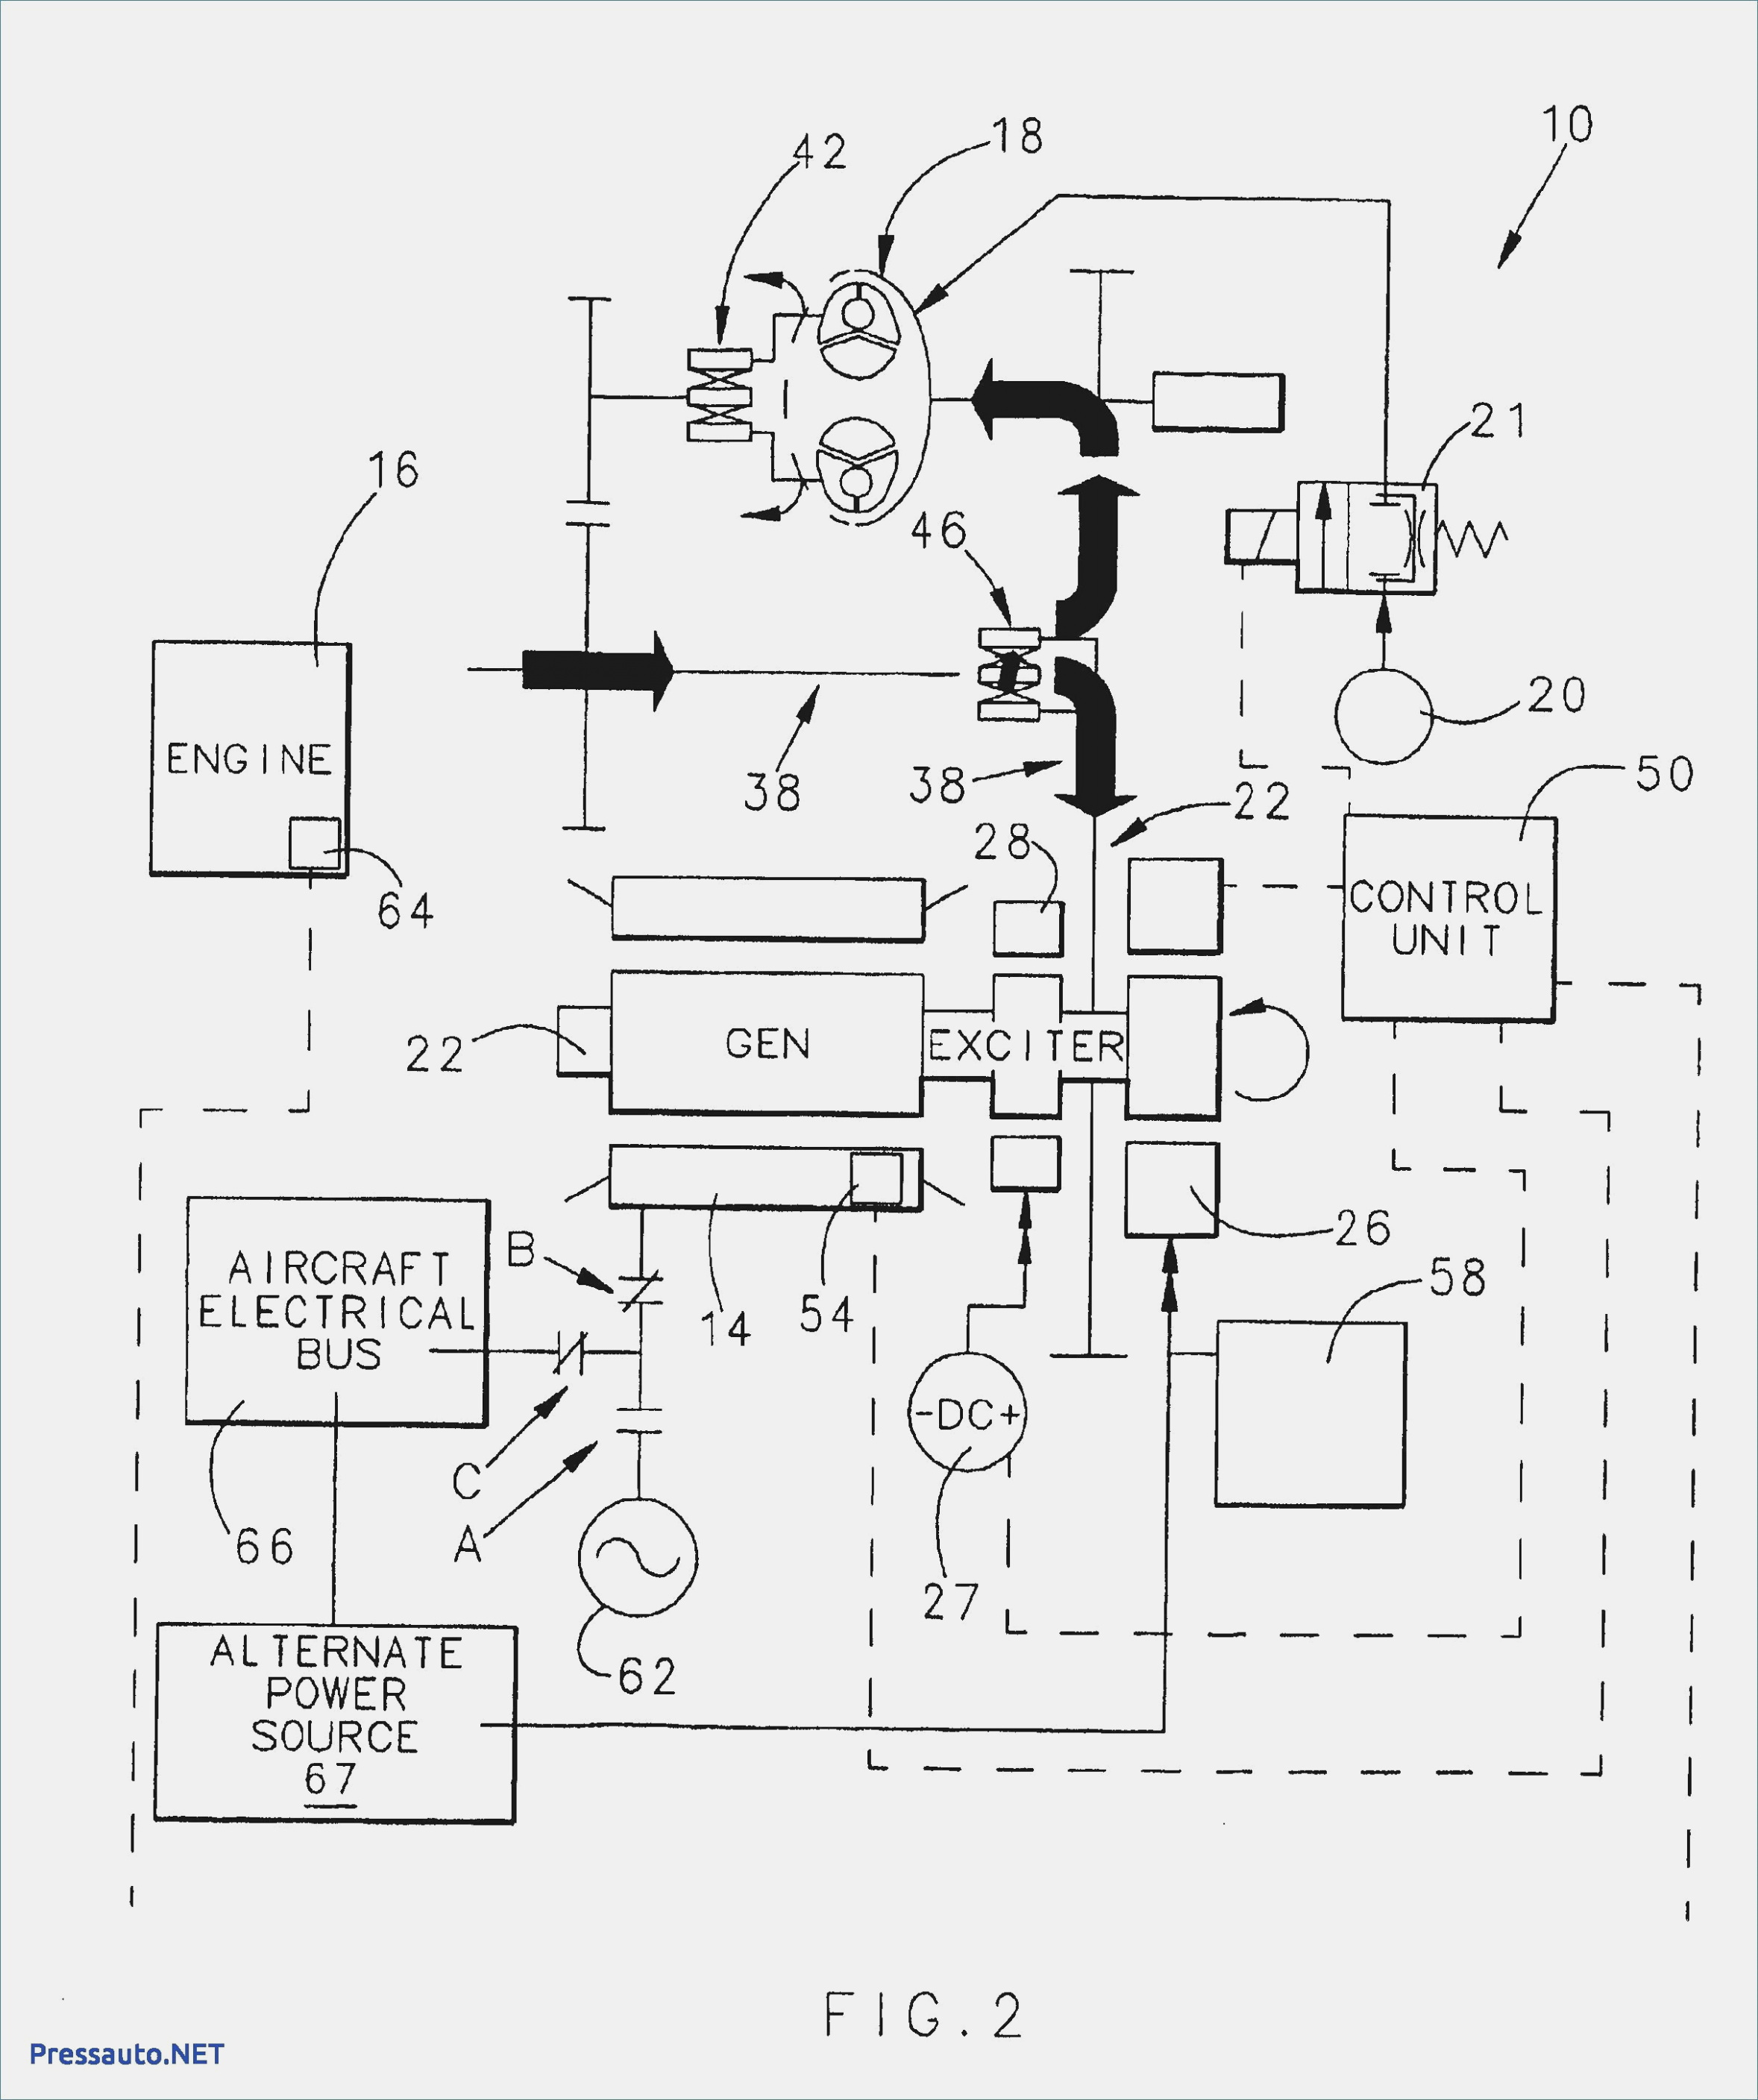 New Learn Electrical Schematics Diagram Wiringdiagram Diagramming Diagramm Visuals Visualisa Electrical Wiring Diagram Diagram Electrical Circuit Diagram